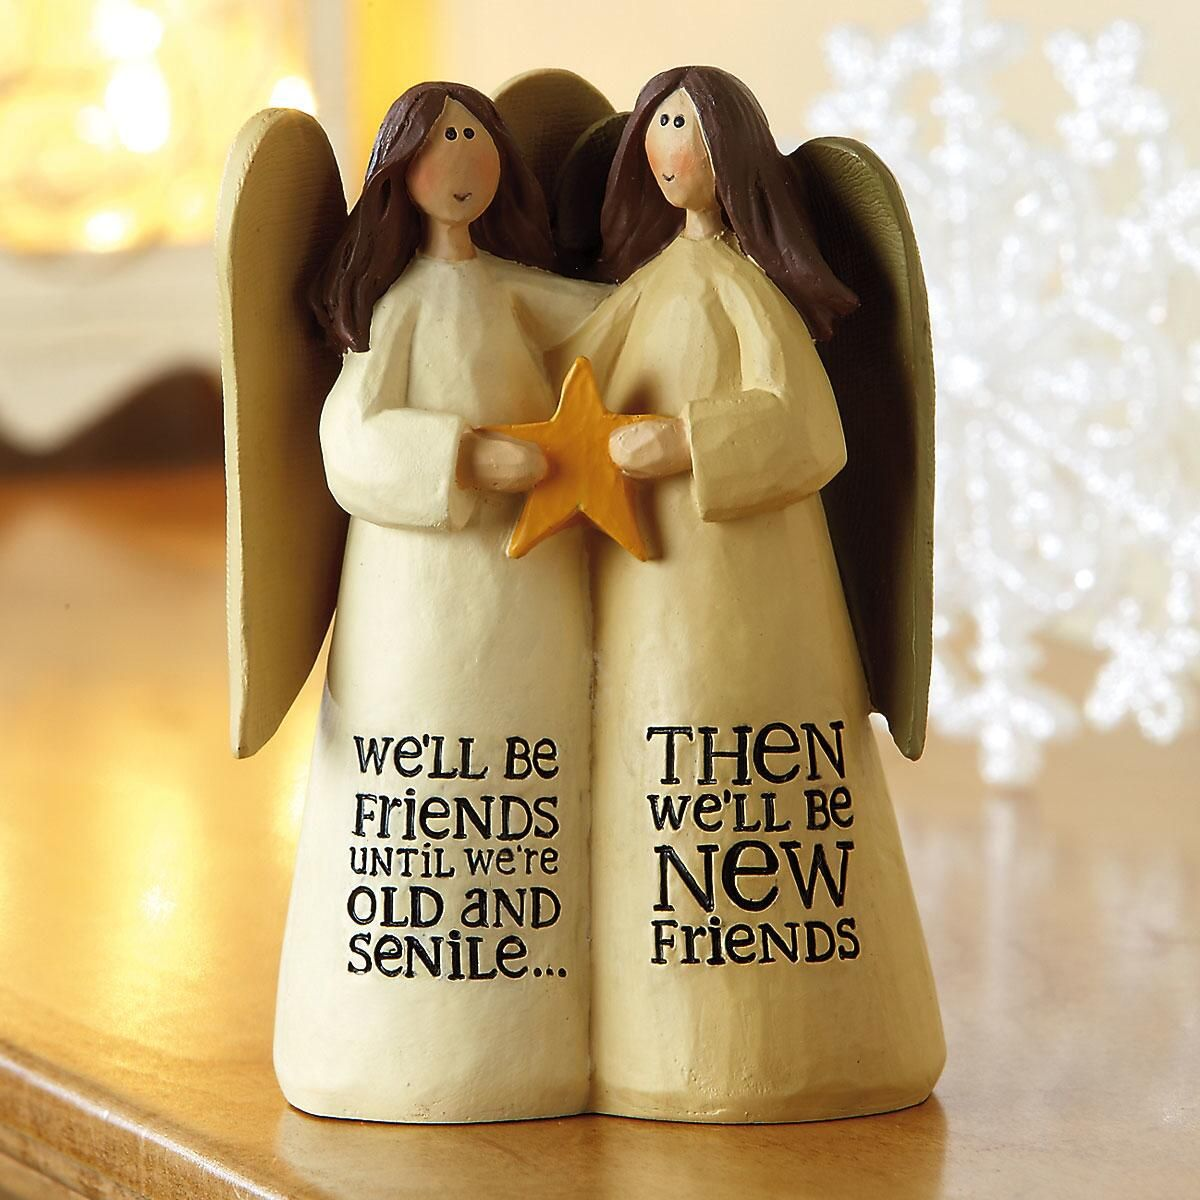 We'll Be Friends Angels Figurine